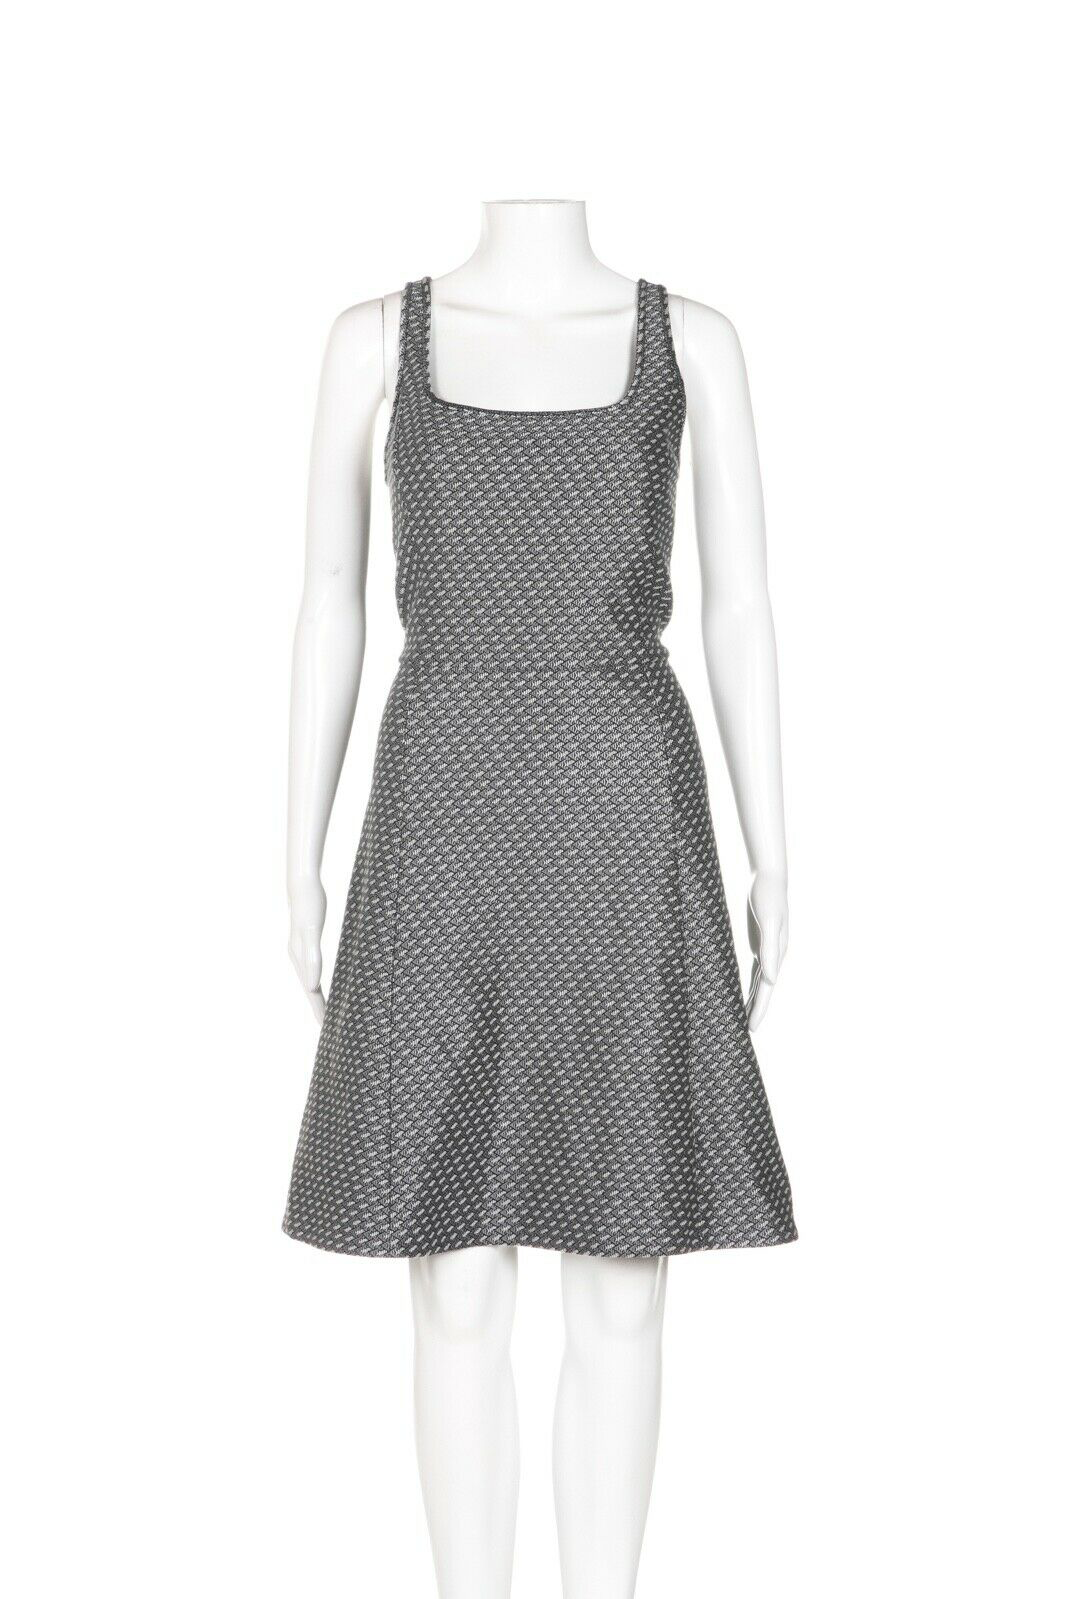 THEORY Trekana Circuit Knit Dress